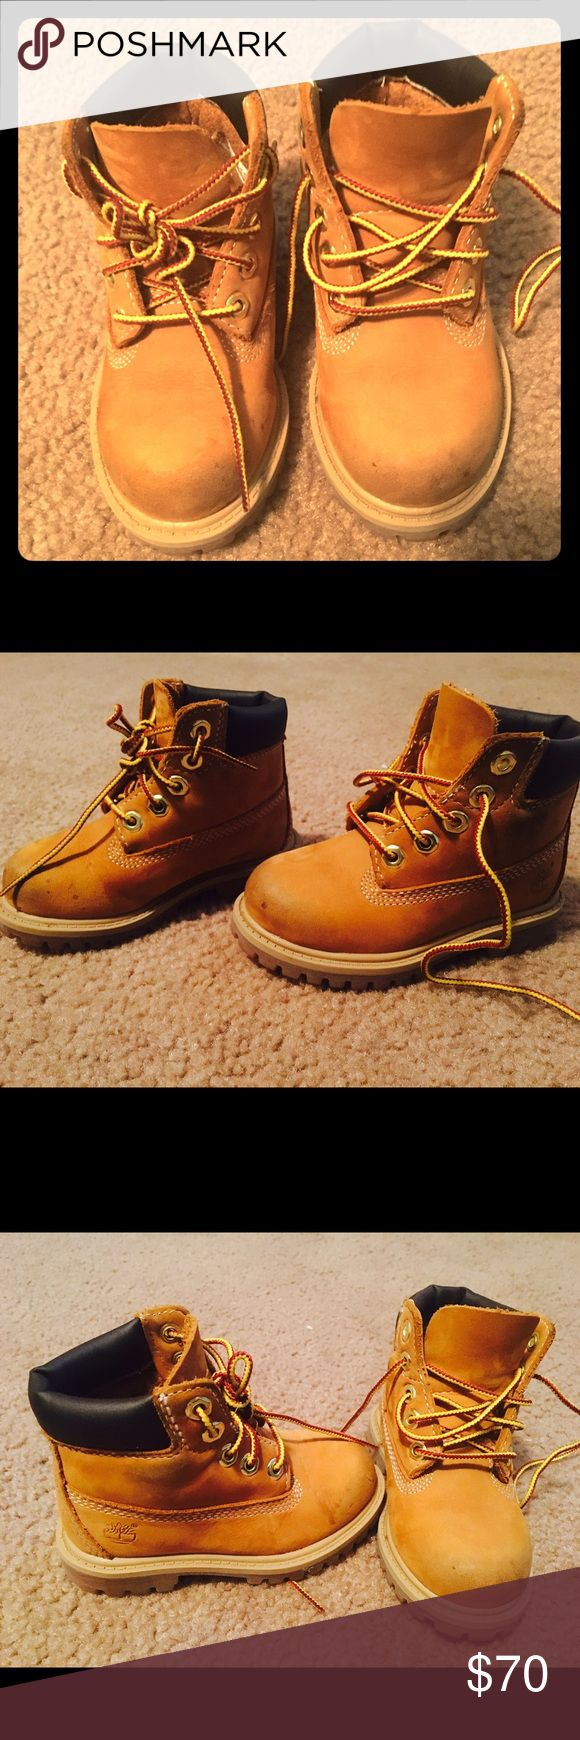 Timberland boots Wheat Timberland boots. Less than year old. Few spots worn a few times. Size 7. Timberland Shoes Boots